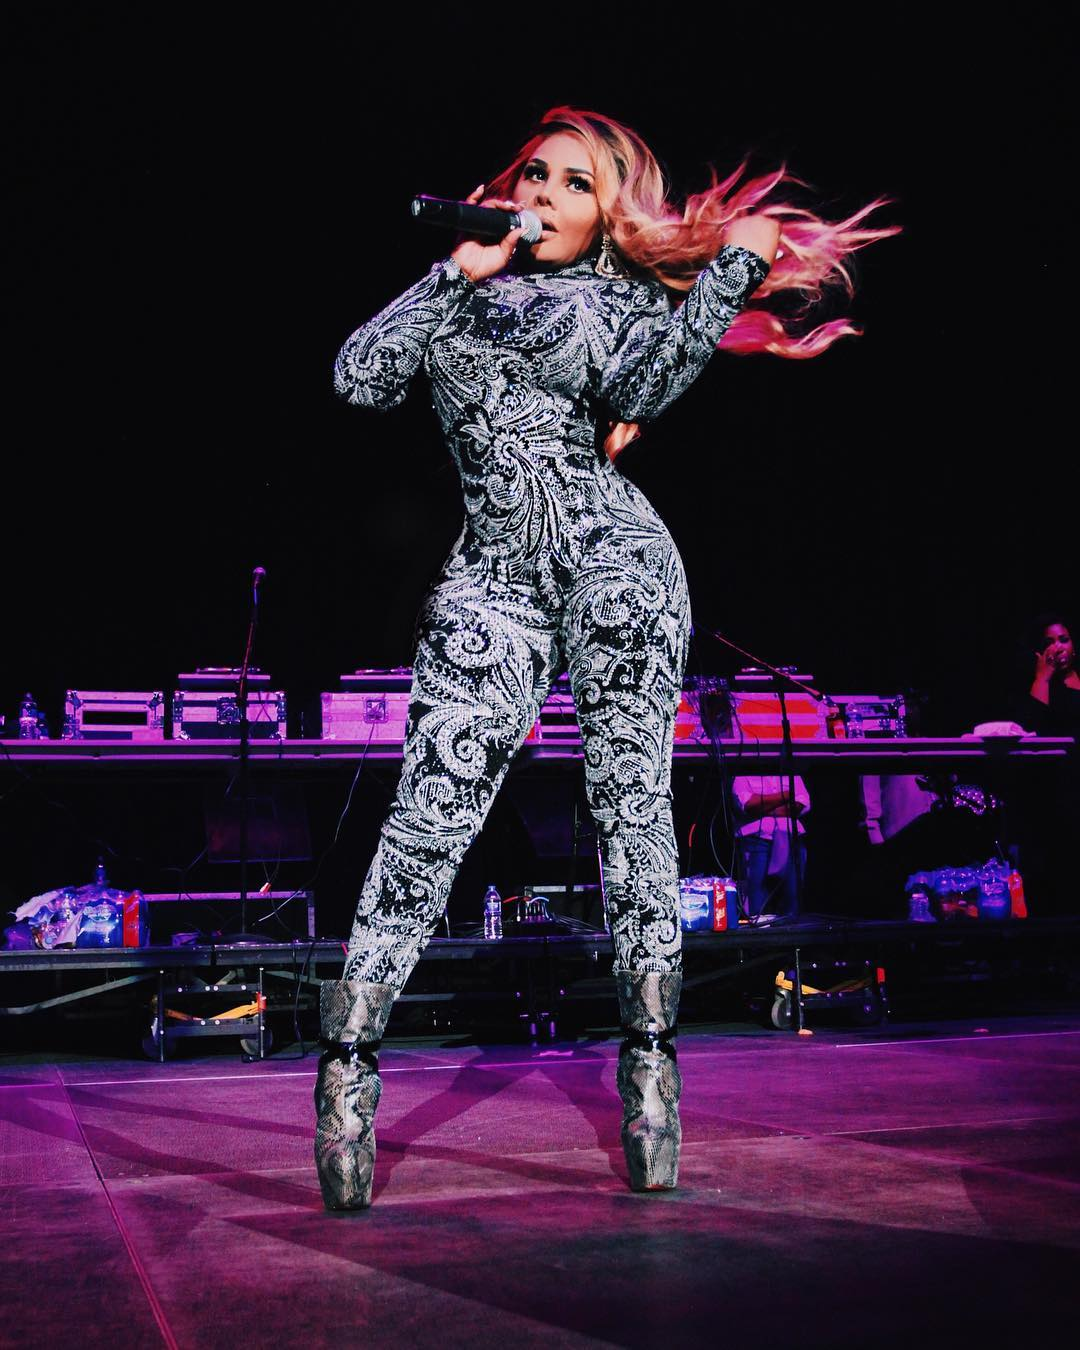 Lil Kim Named Person Of Interest In Latest BET Robbery